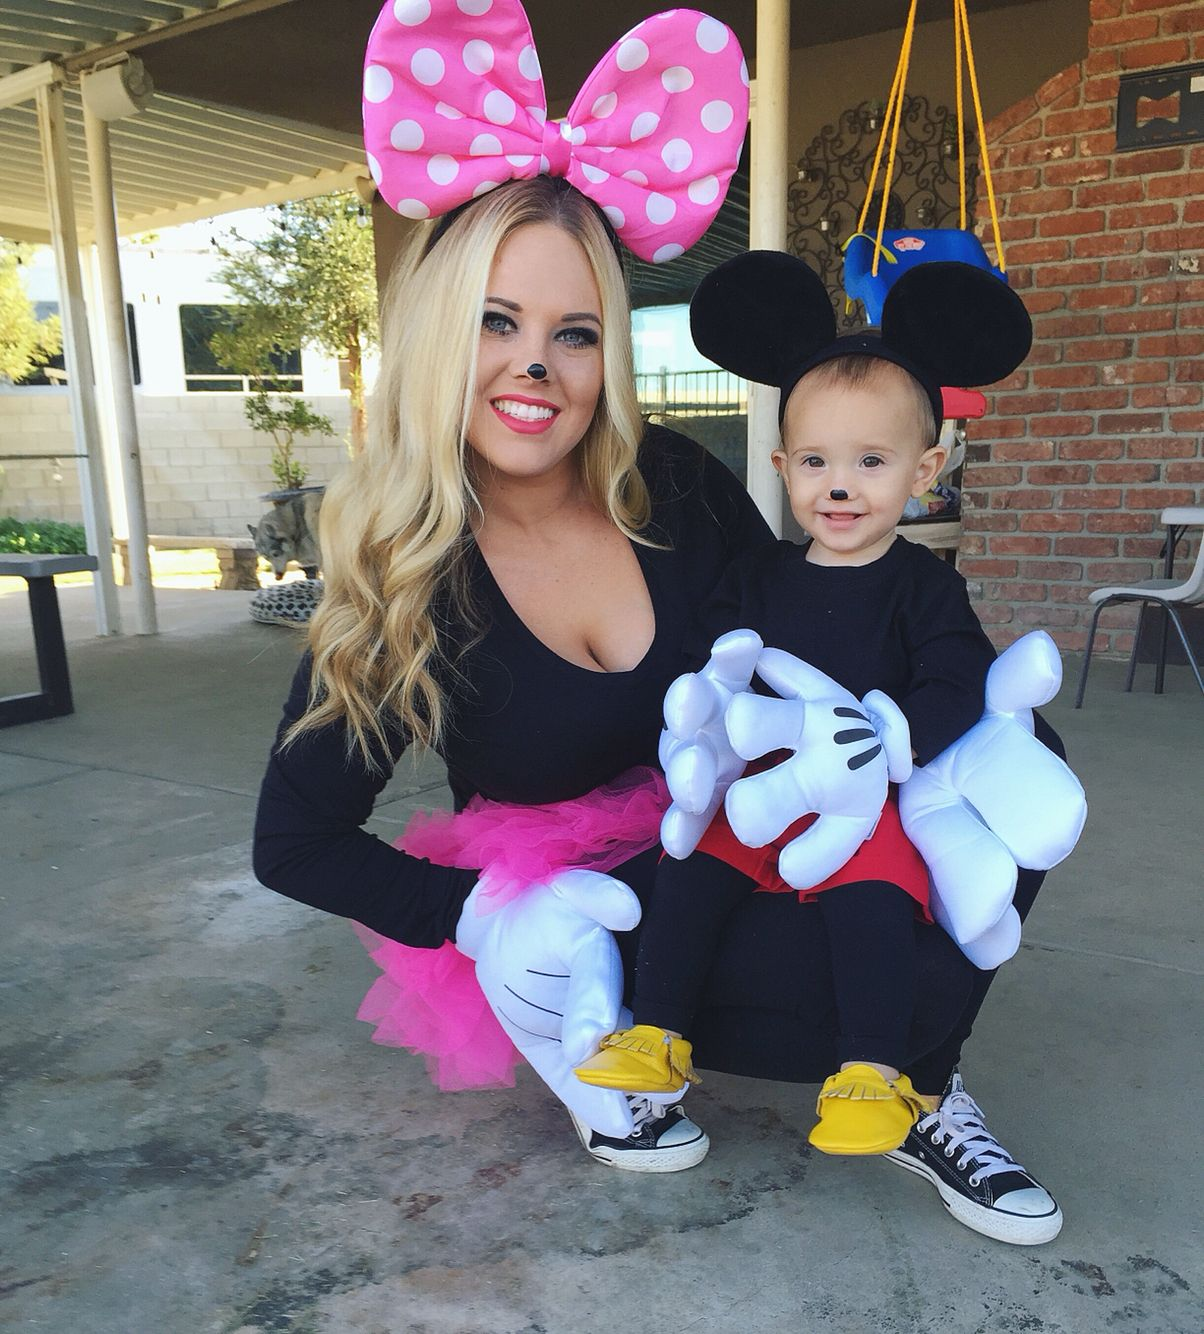 Mother And Baby Halloween Costumes.Mom And Son Costume Mother Son Halloween Costumes Toddler Halloween Costumes Boy Halloween Costumes